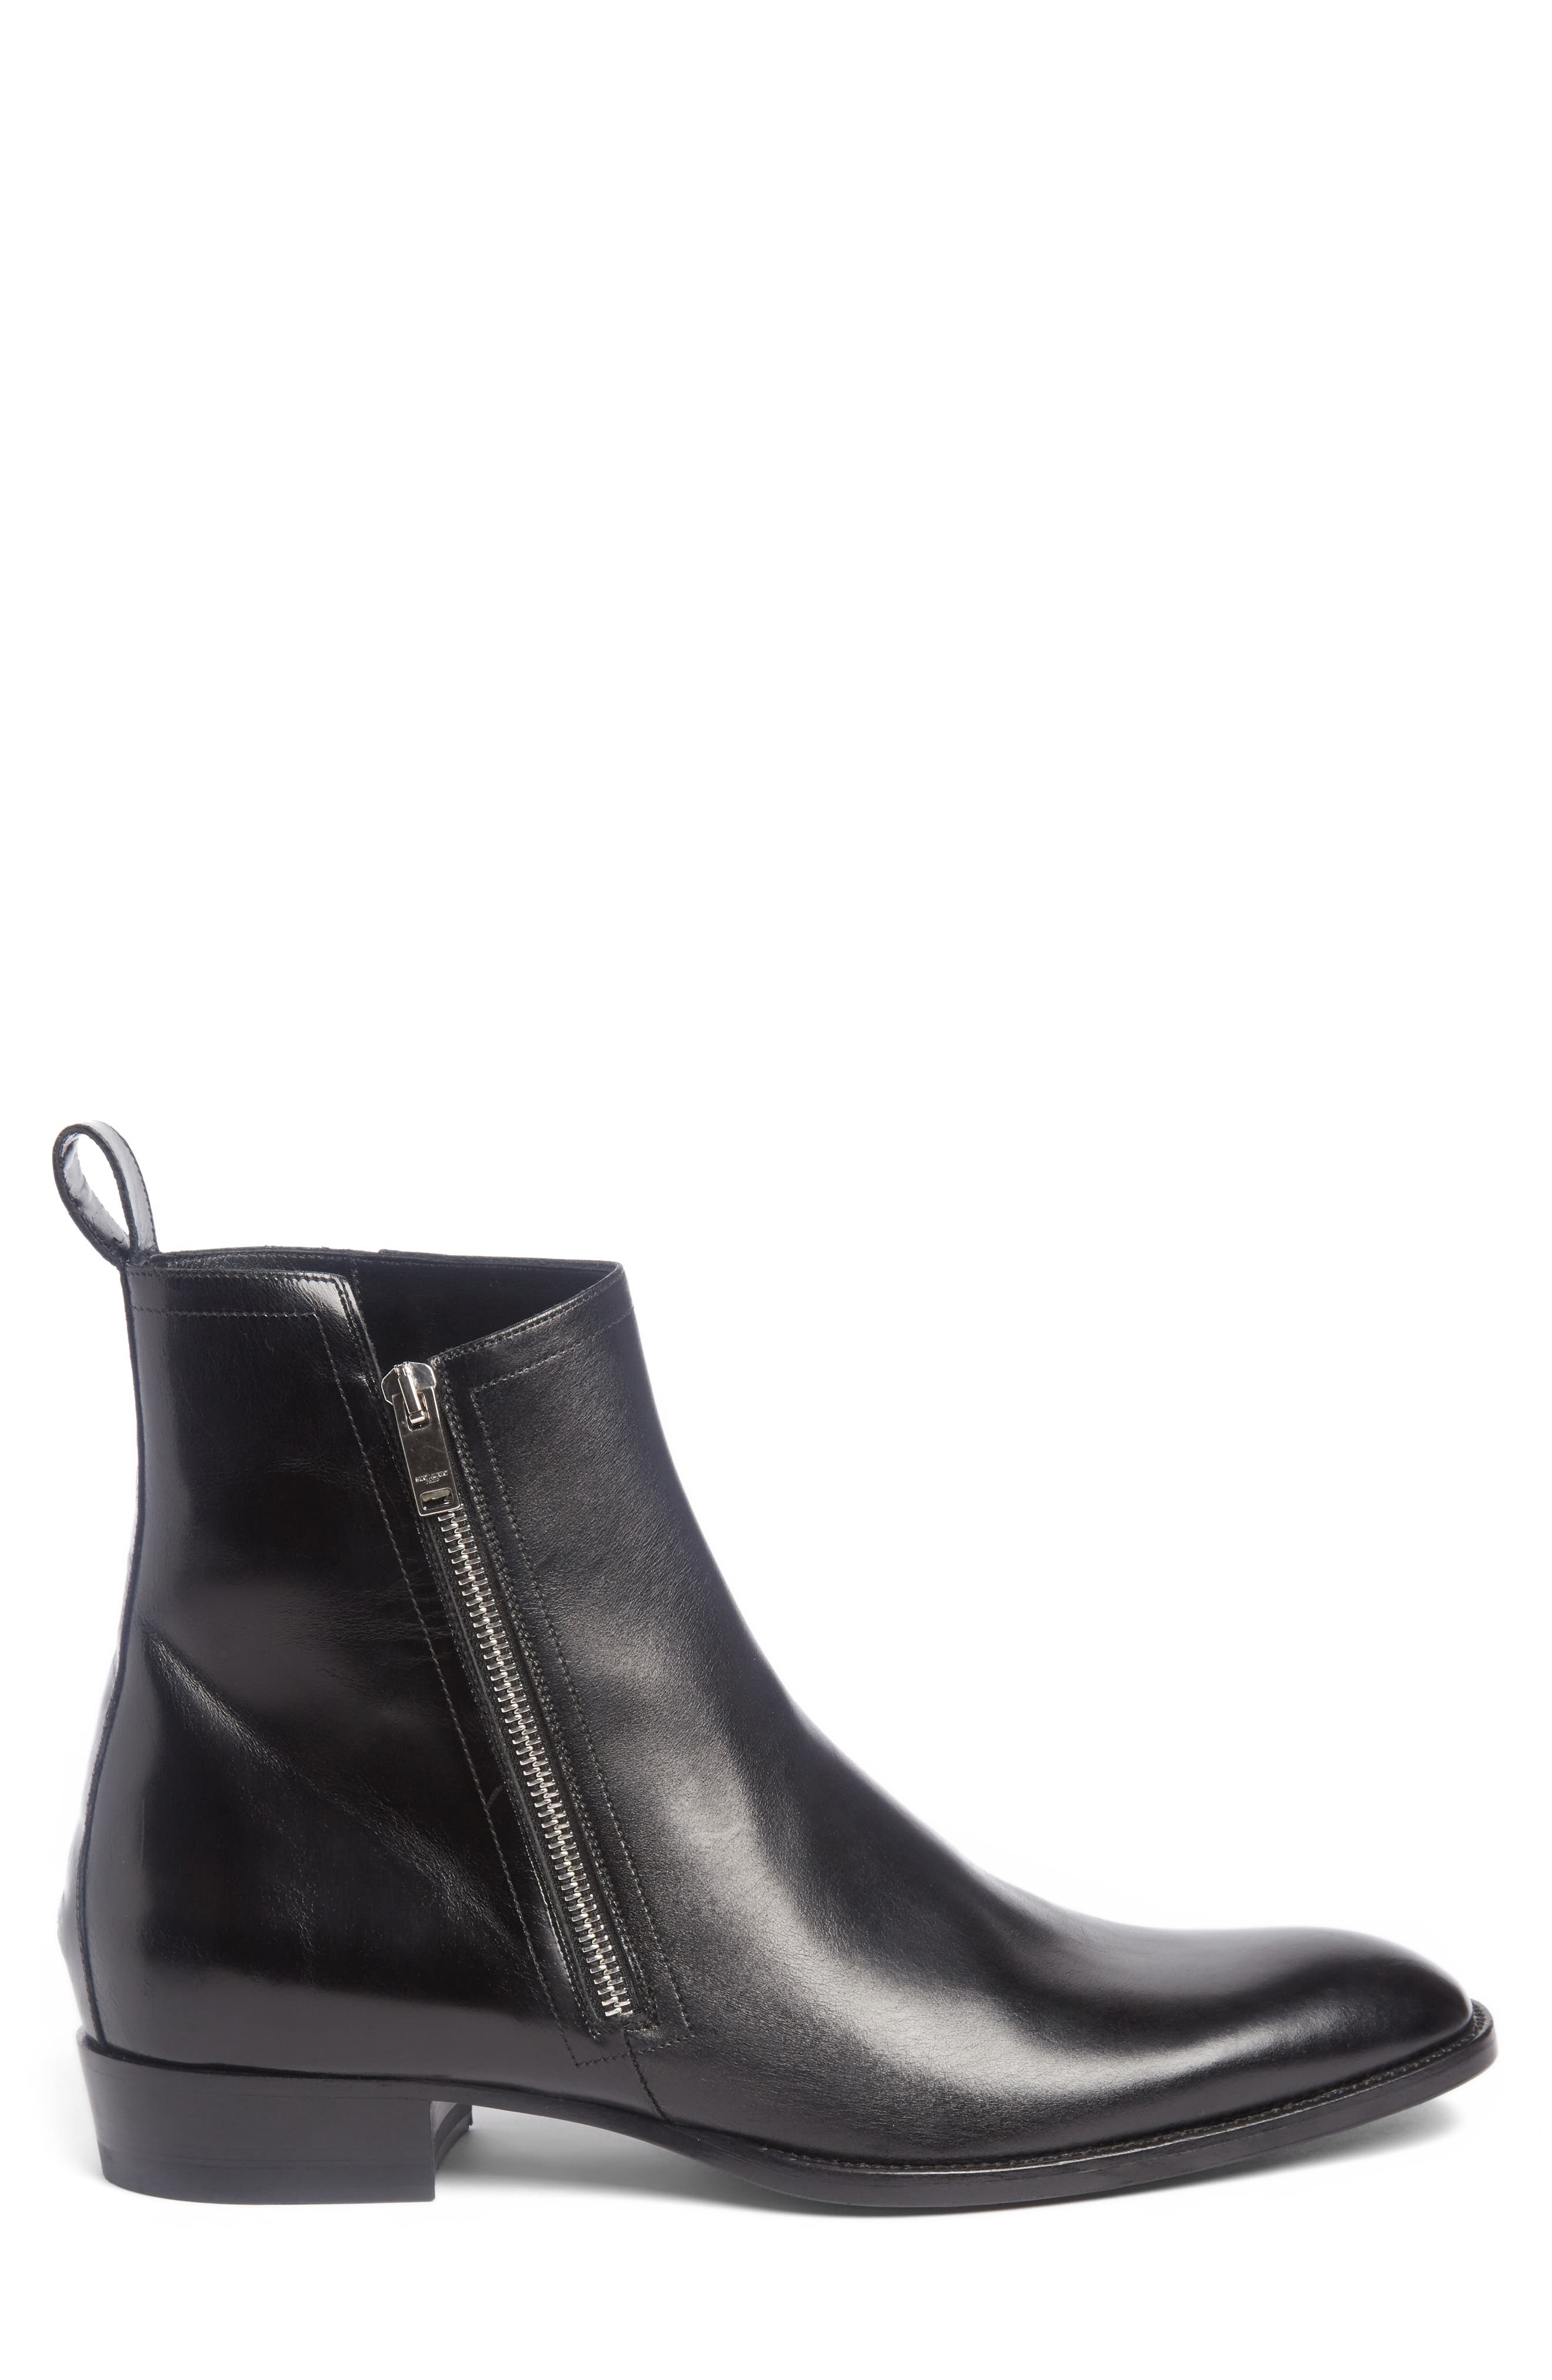 Wyatt Side Zip Boot,                             Alternate thumbnail 3, color,                             Nero Leather